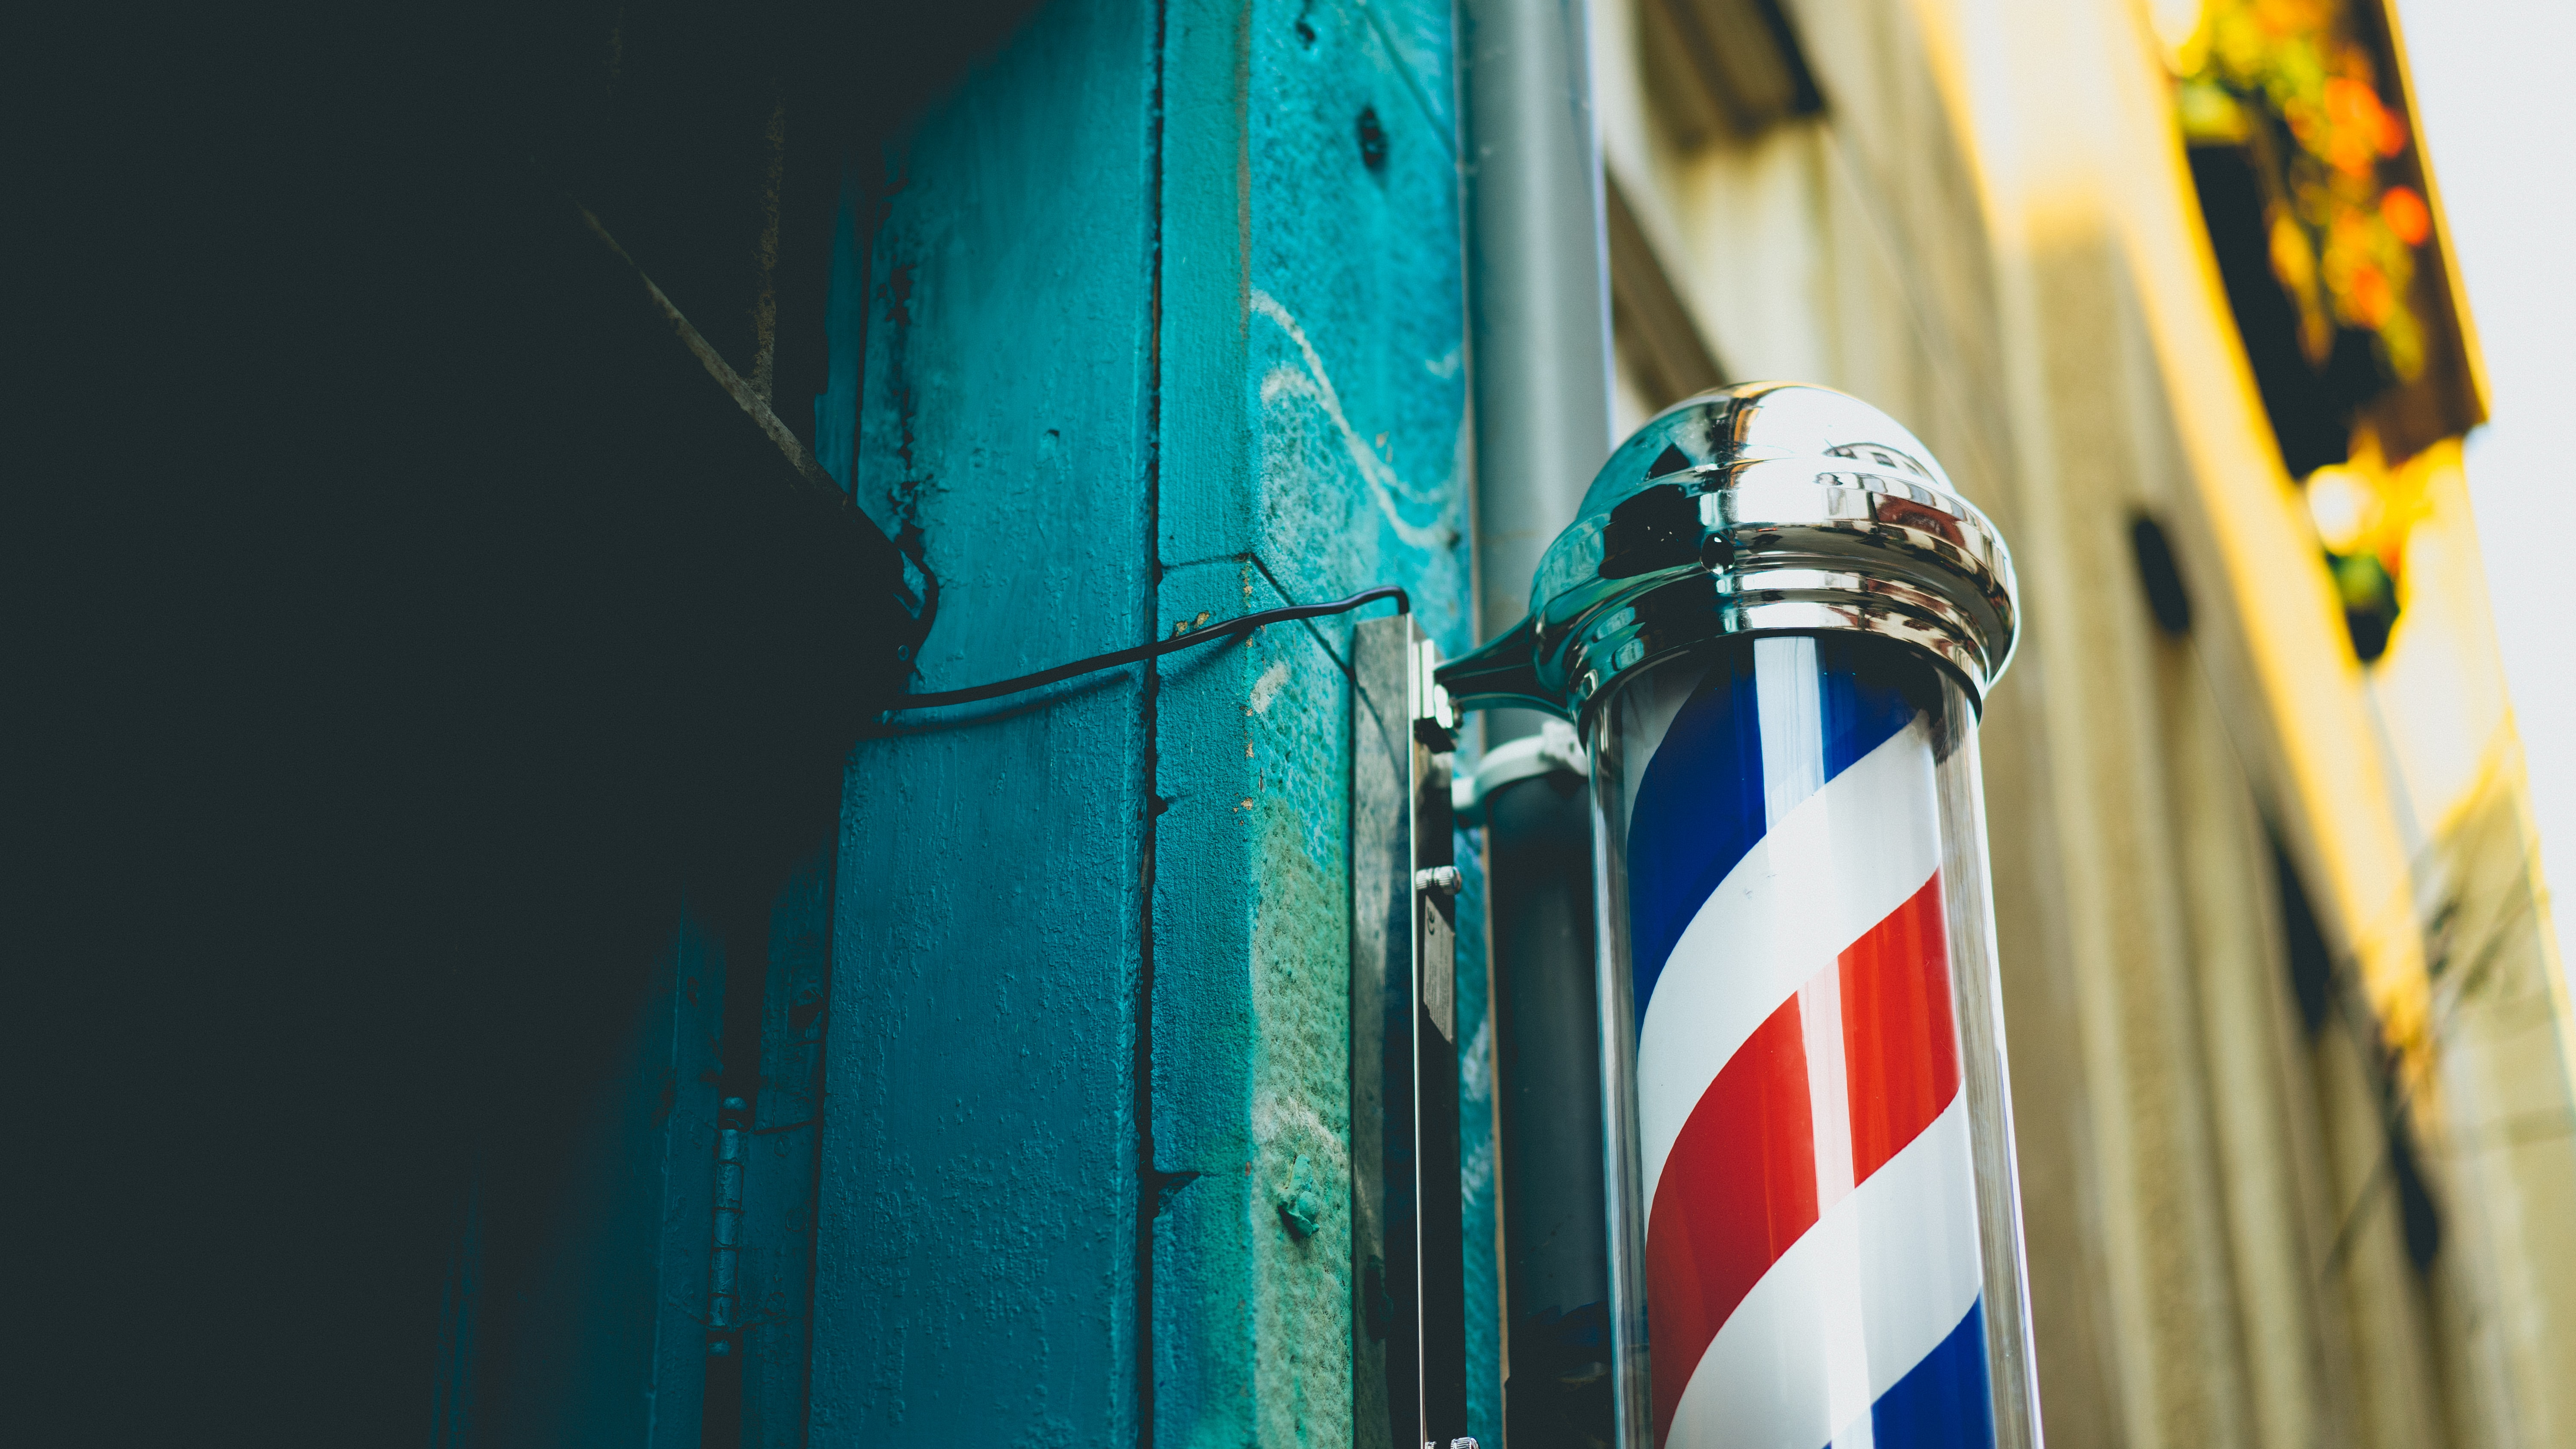 Barbershop red and white swirling pole capped by steel ends beside an aquamarine wall